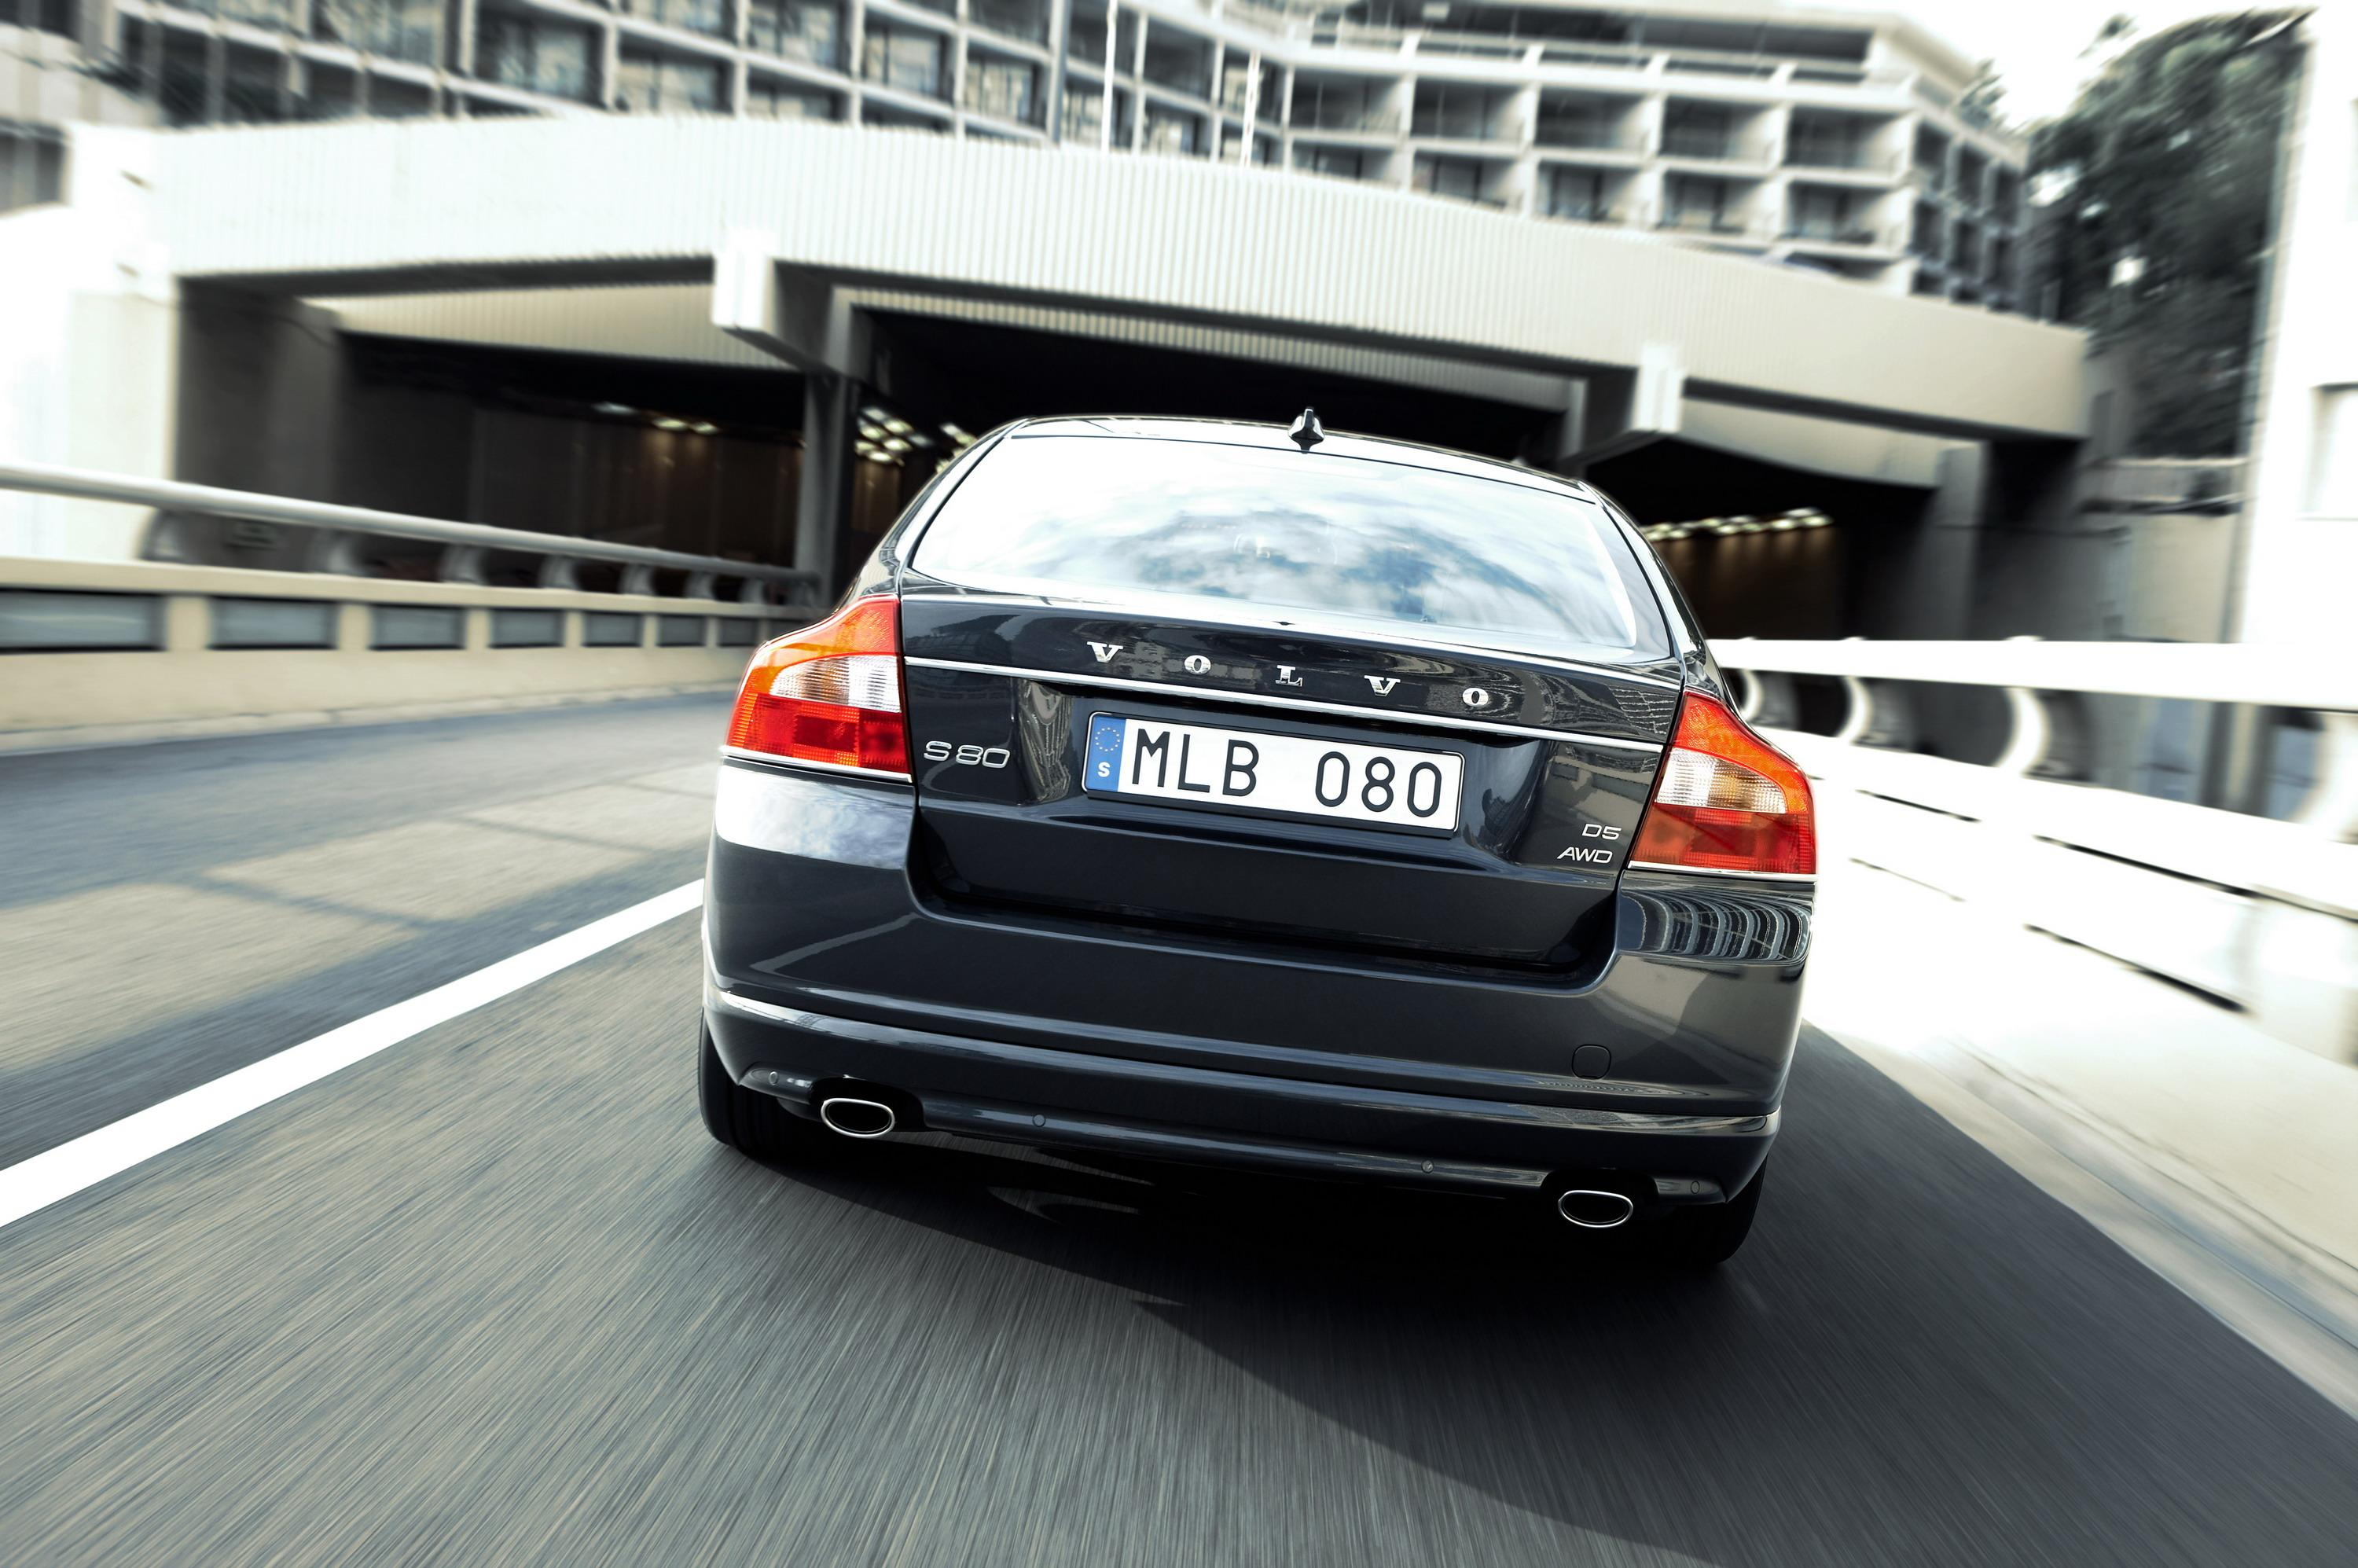 2010 volvo s80 review top speed publicscrutiny Image collections